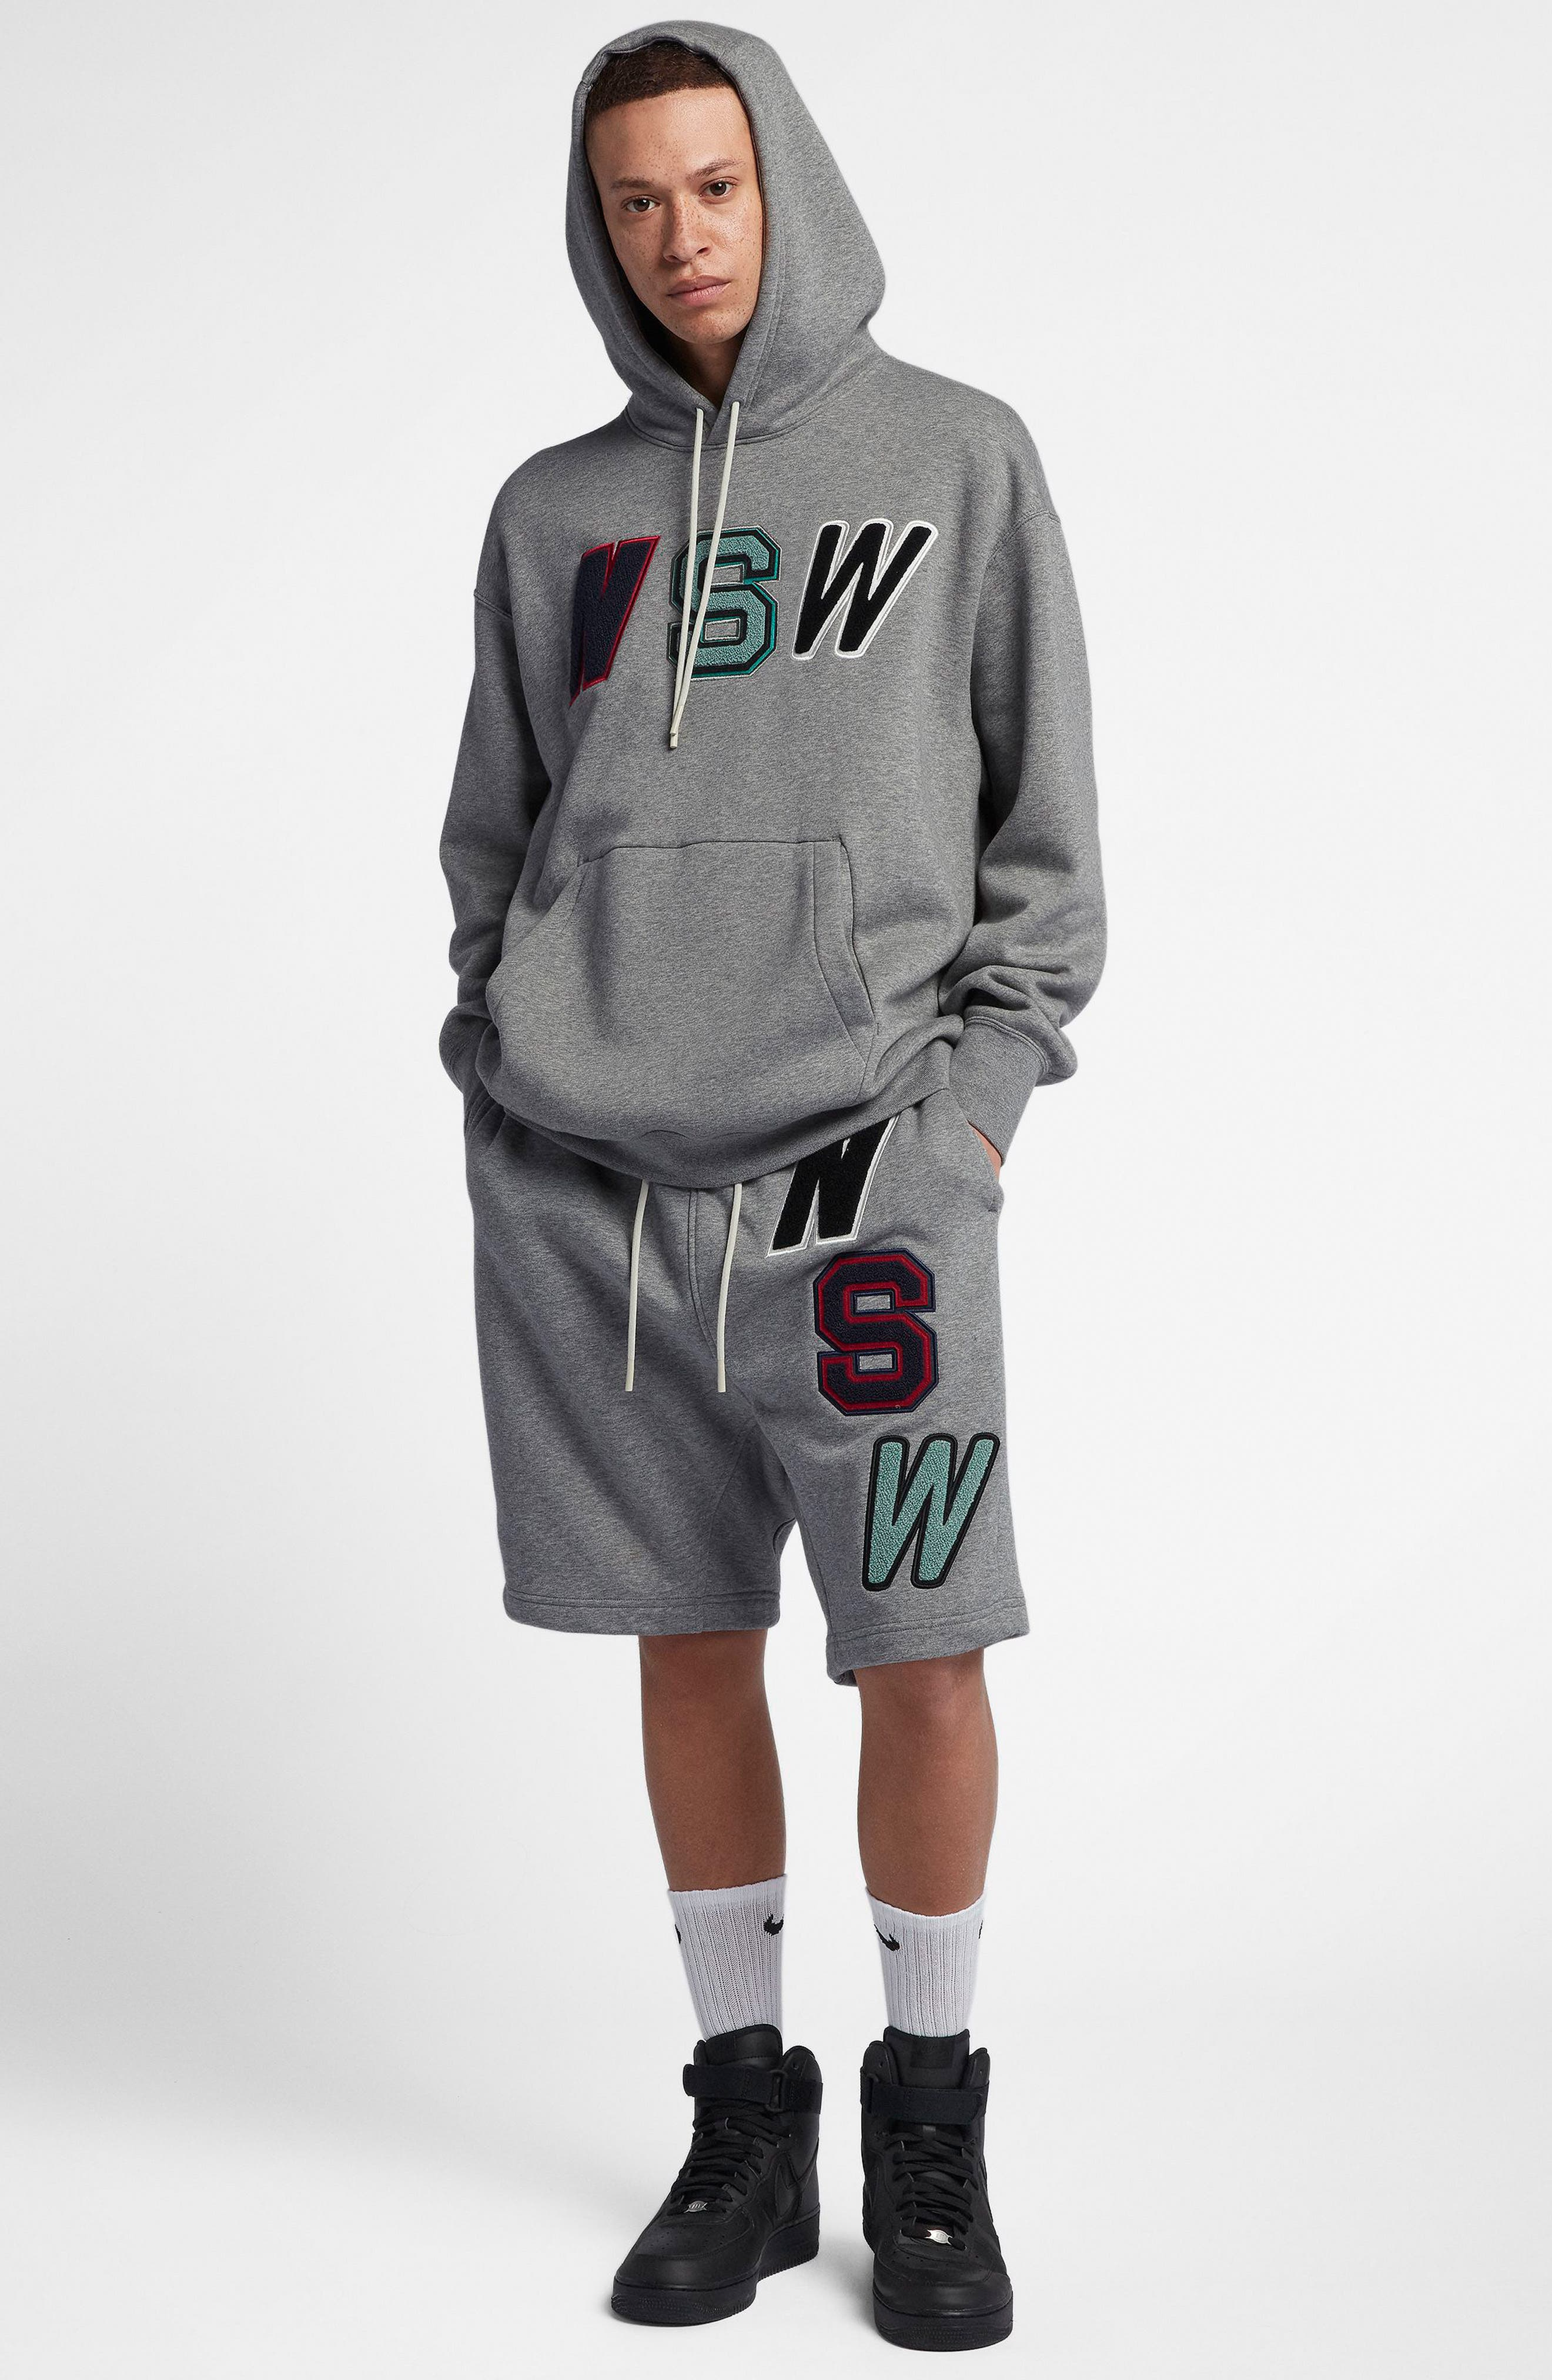 NSW Hoodie,                             Alternate thumbnail 5, color,                             CARBON HEATHER